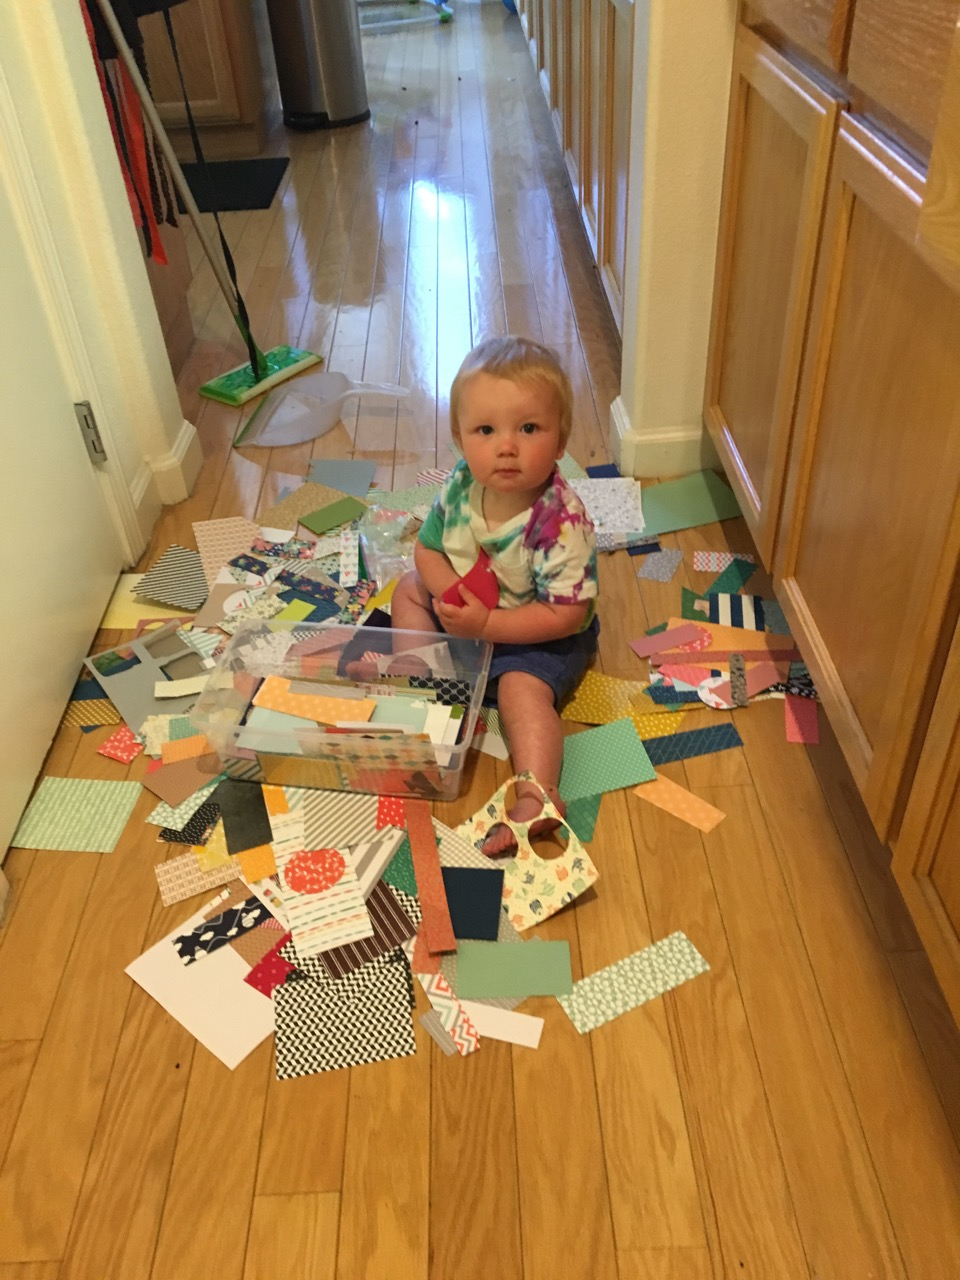 The only way he would let mom finish a craft